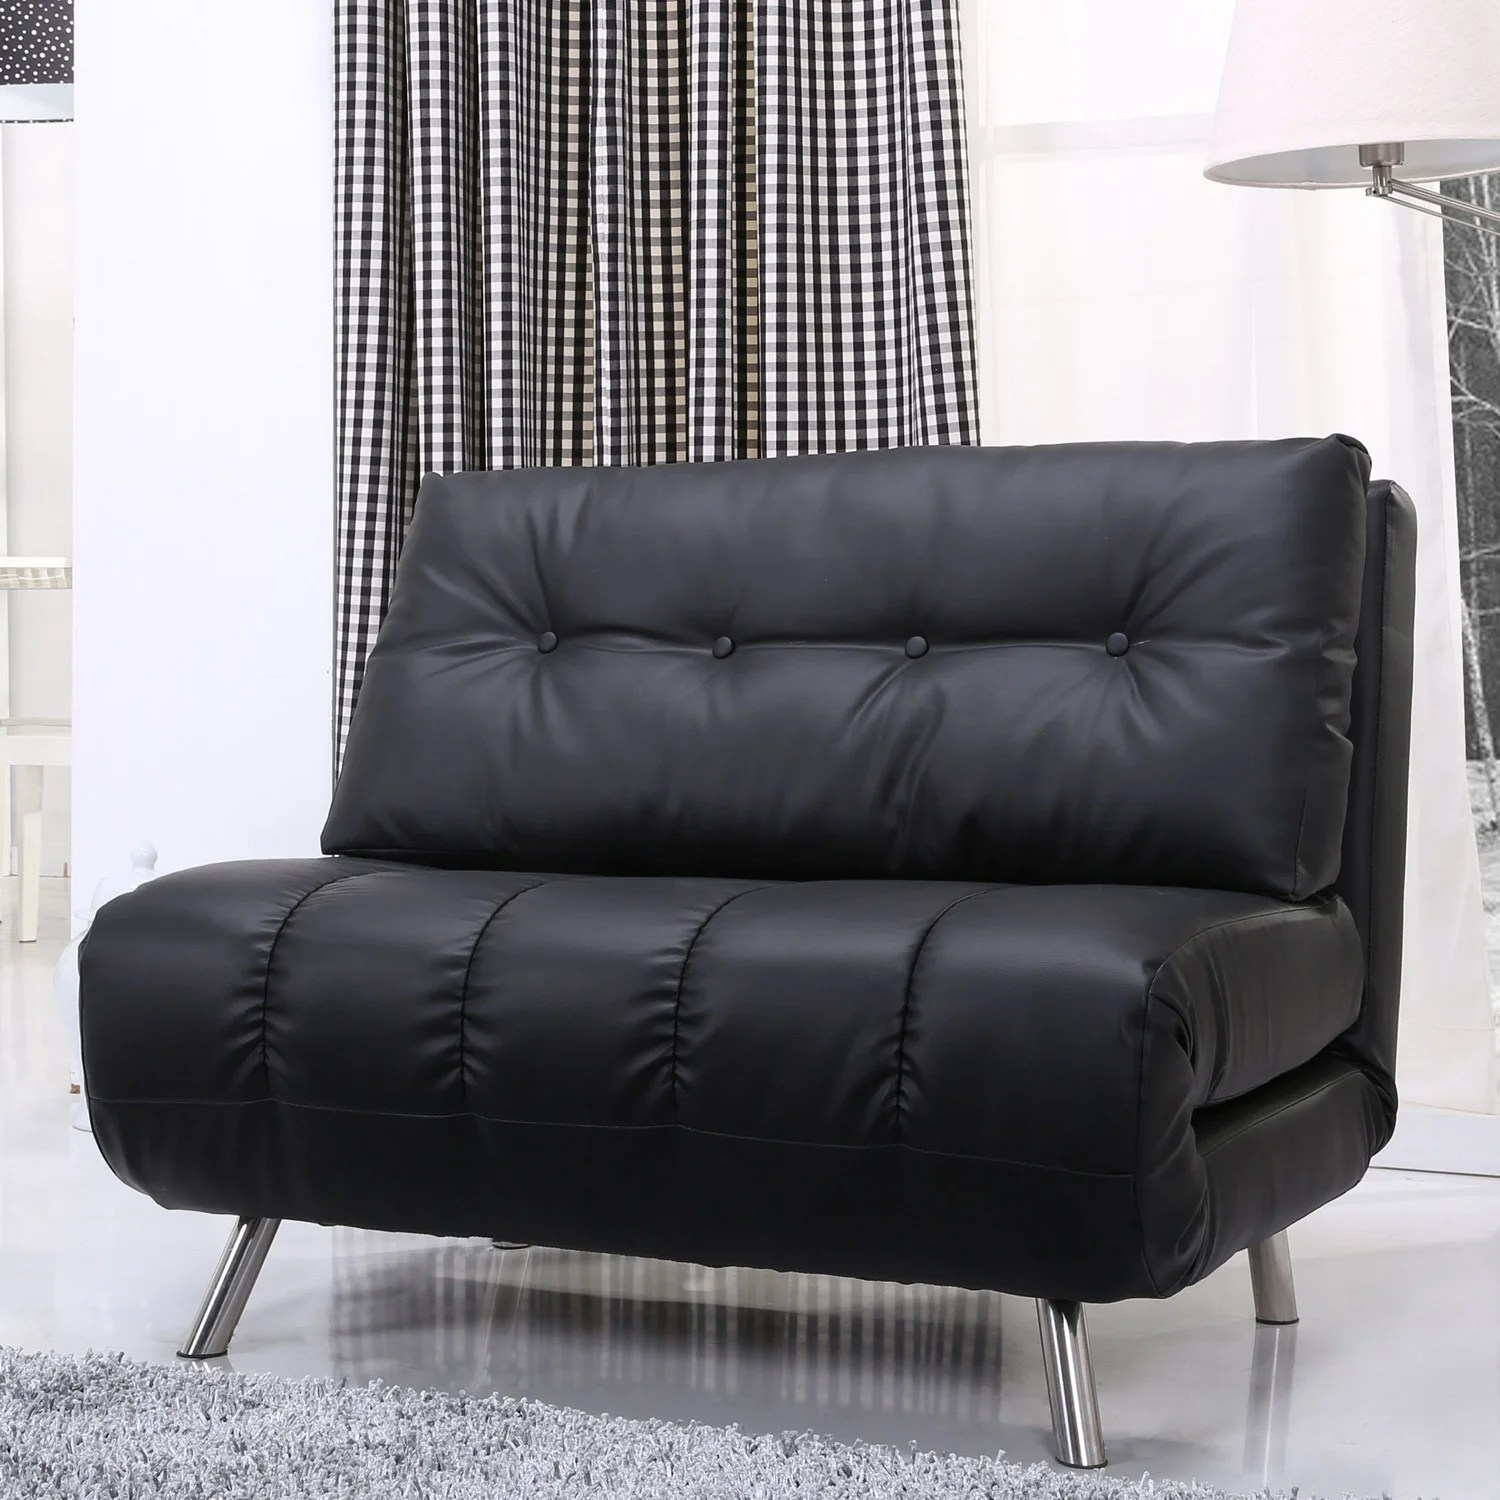 Chair That Converts To A Bed Gold Sparrow Tampa Black Convertible Big Chair Bed